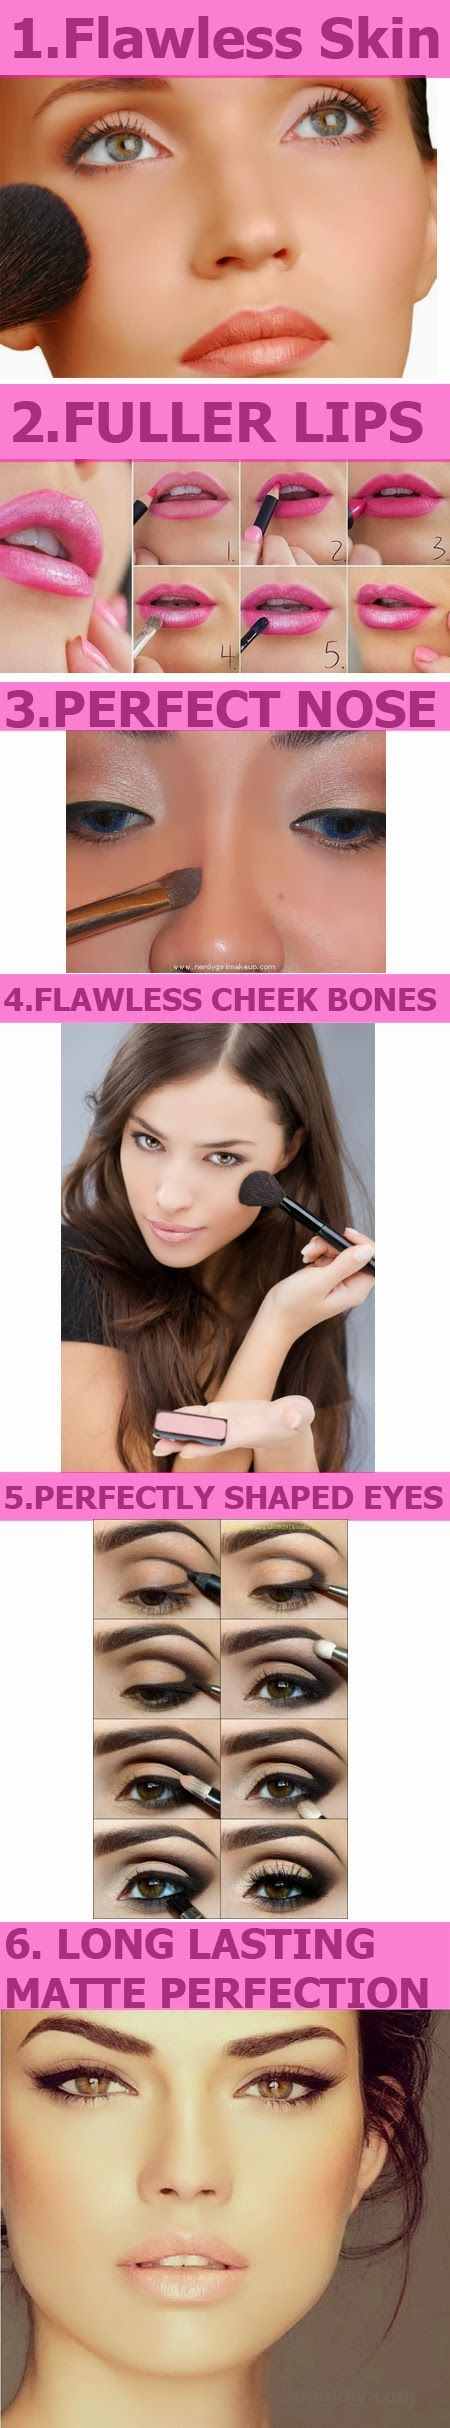 Zoom DIY: 7 Makeup Tricks For a Picture Perfect Clear Face-Do It Yourself Today